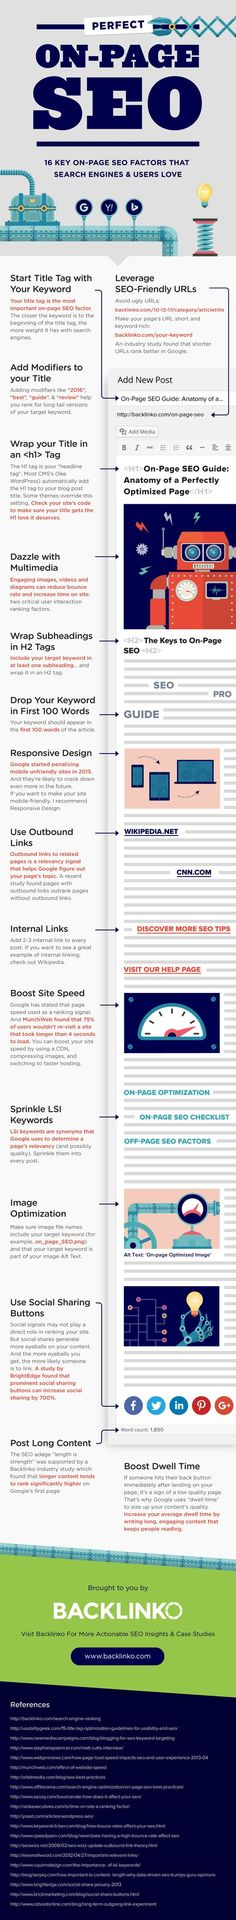 An insanely large infographic that's chock full of useful information...from @backlinko.com